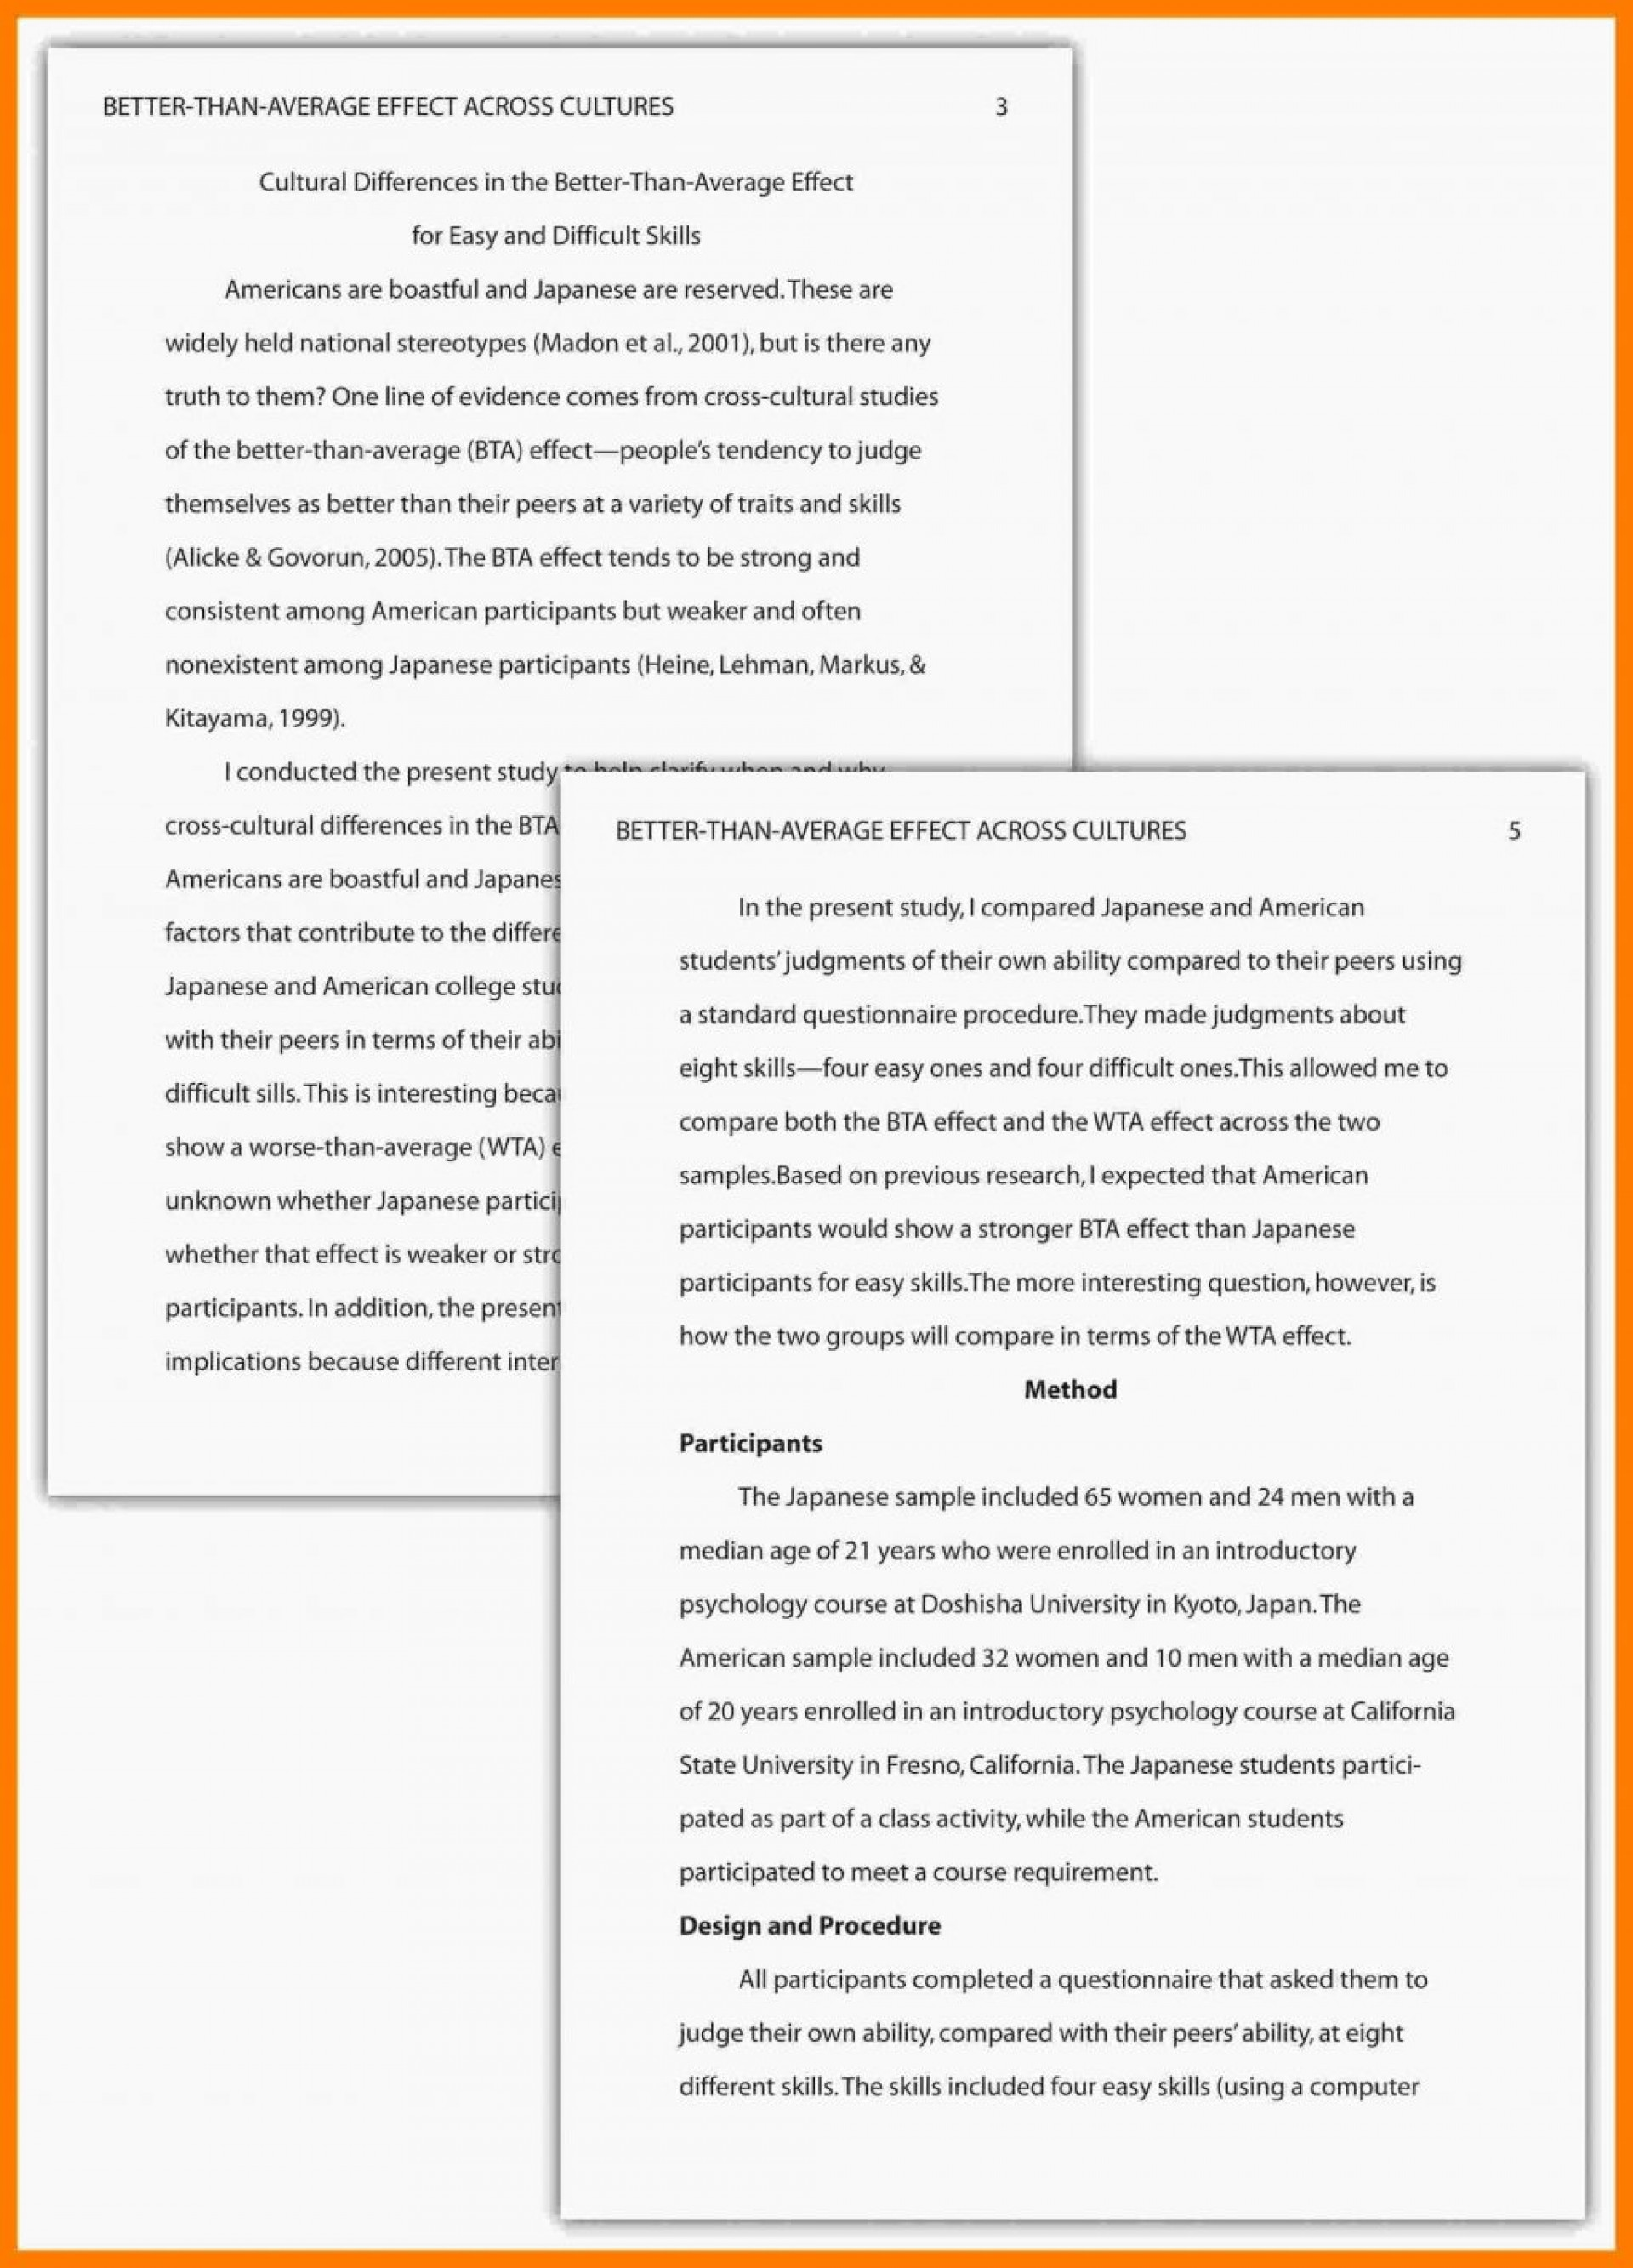 023 Apa Style Paper Example Teller Resume Formatarch Papers In Non 1024x1422 Format Research Fearsome 2018 1920